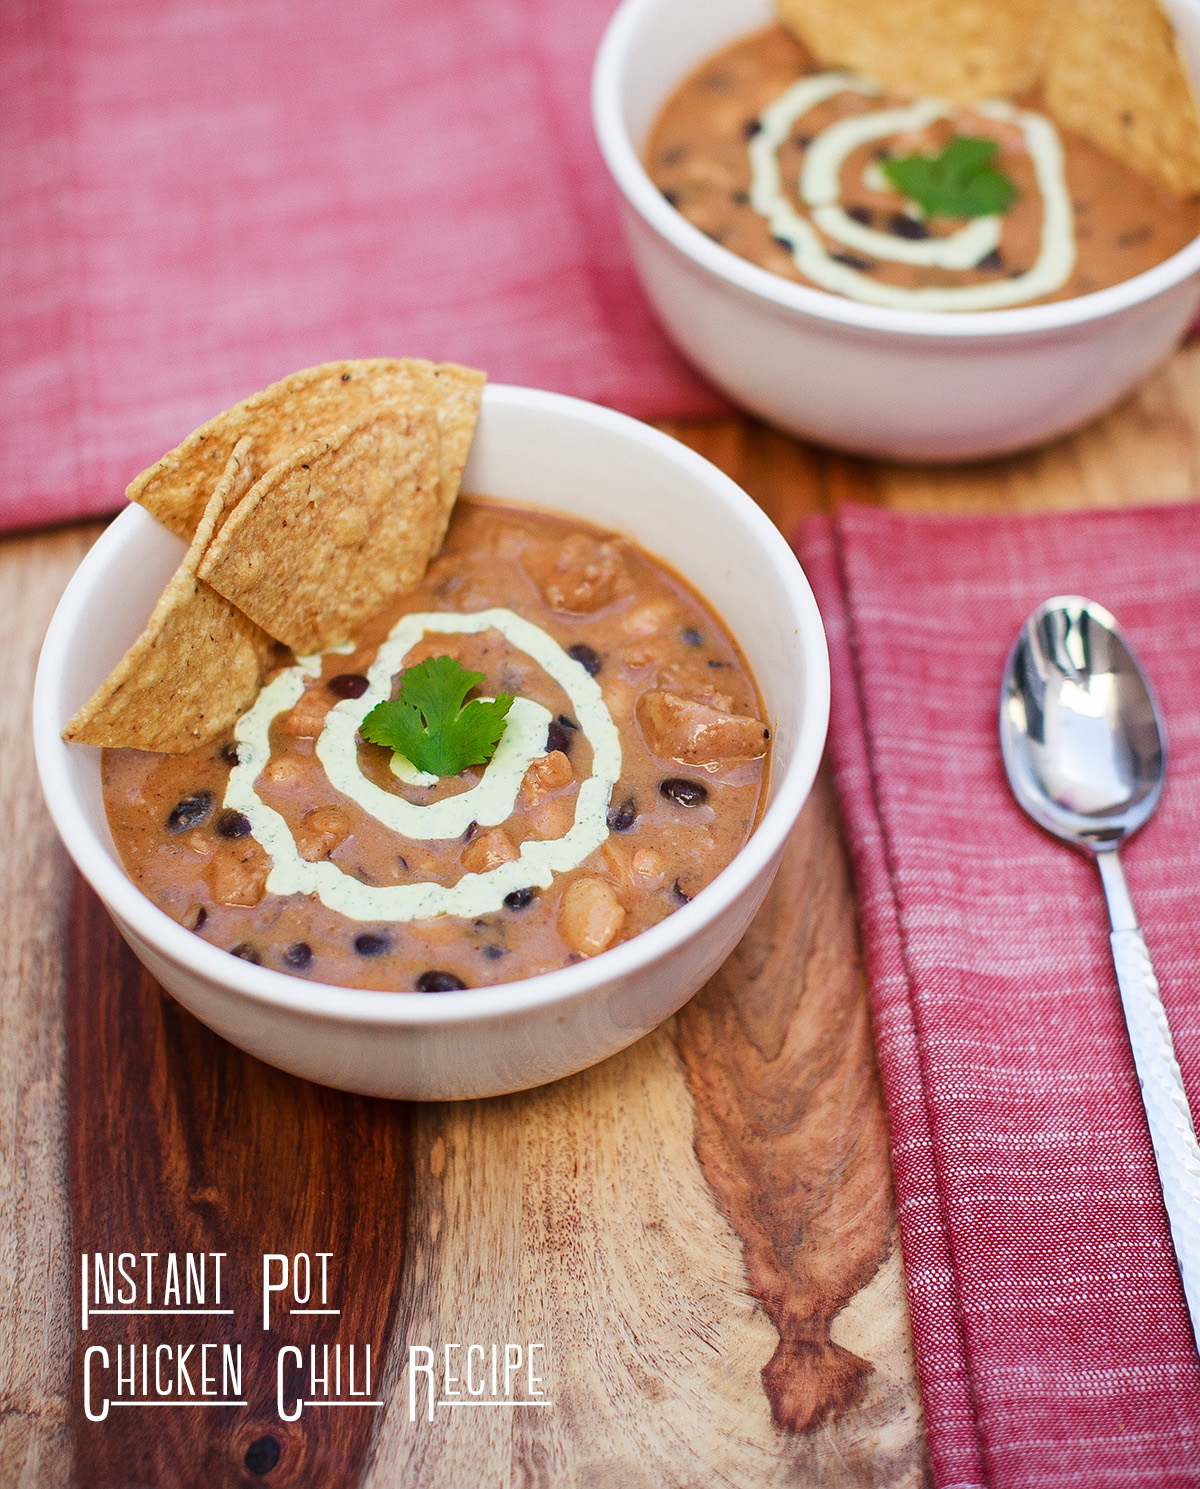 Instant Pot Chicken Chili Recipe